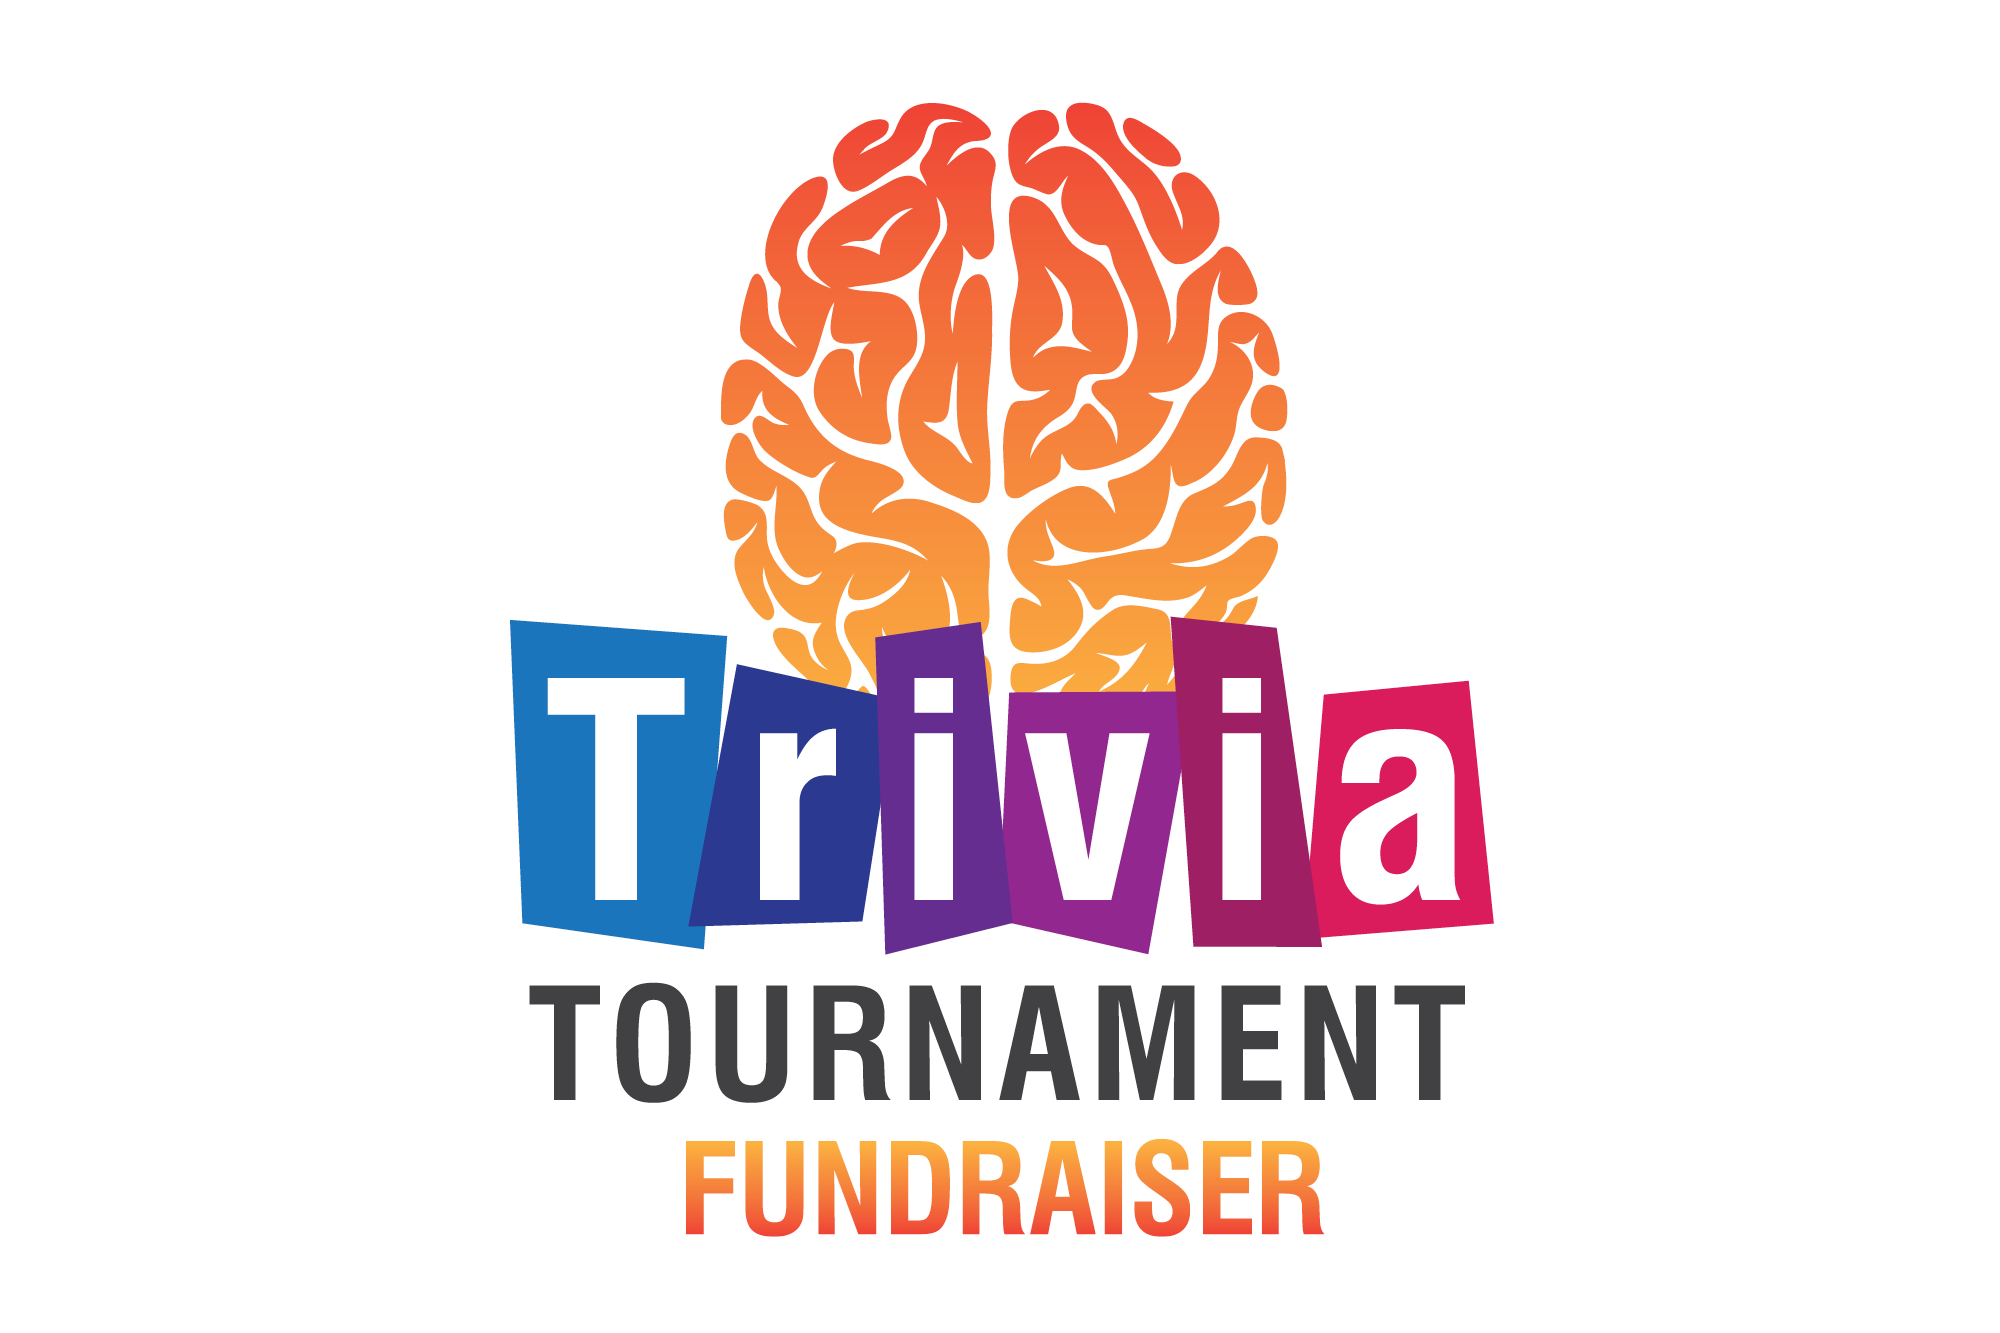 """Image with the words """"Trivia Tournament Fundraiser."""""""